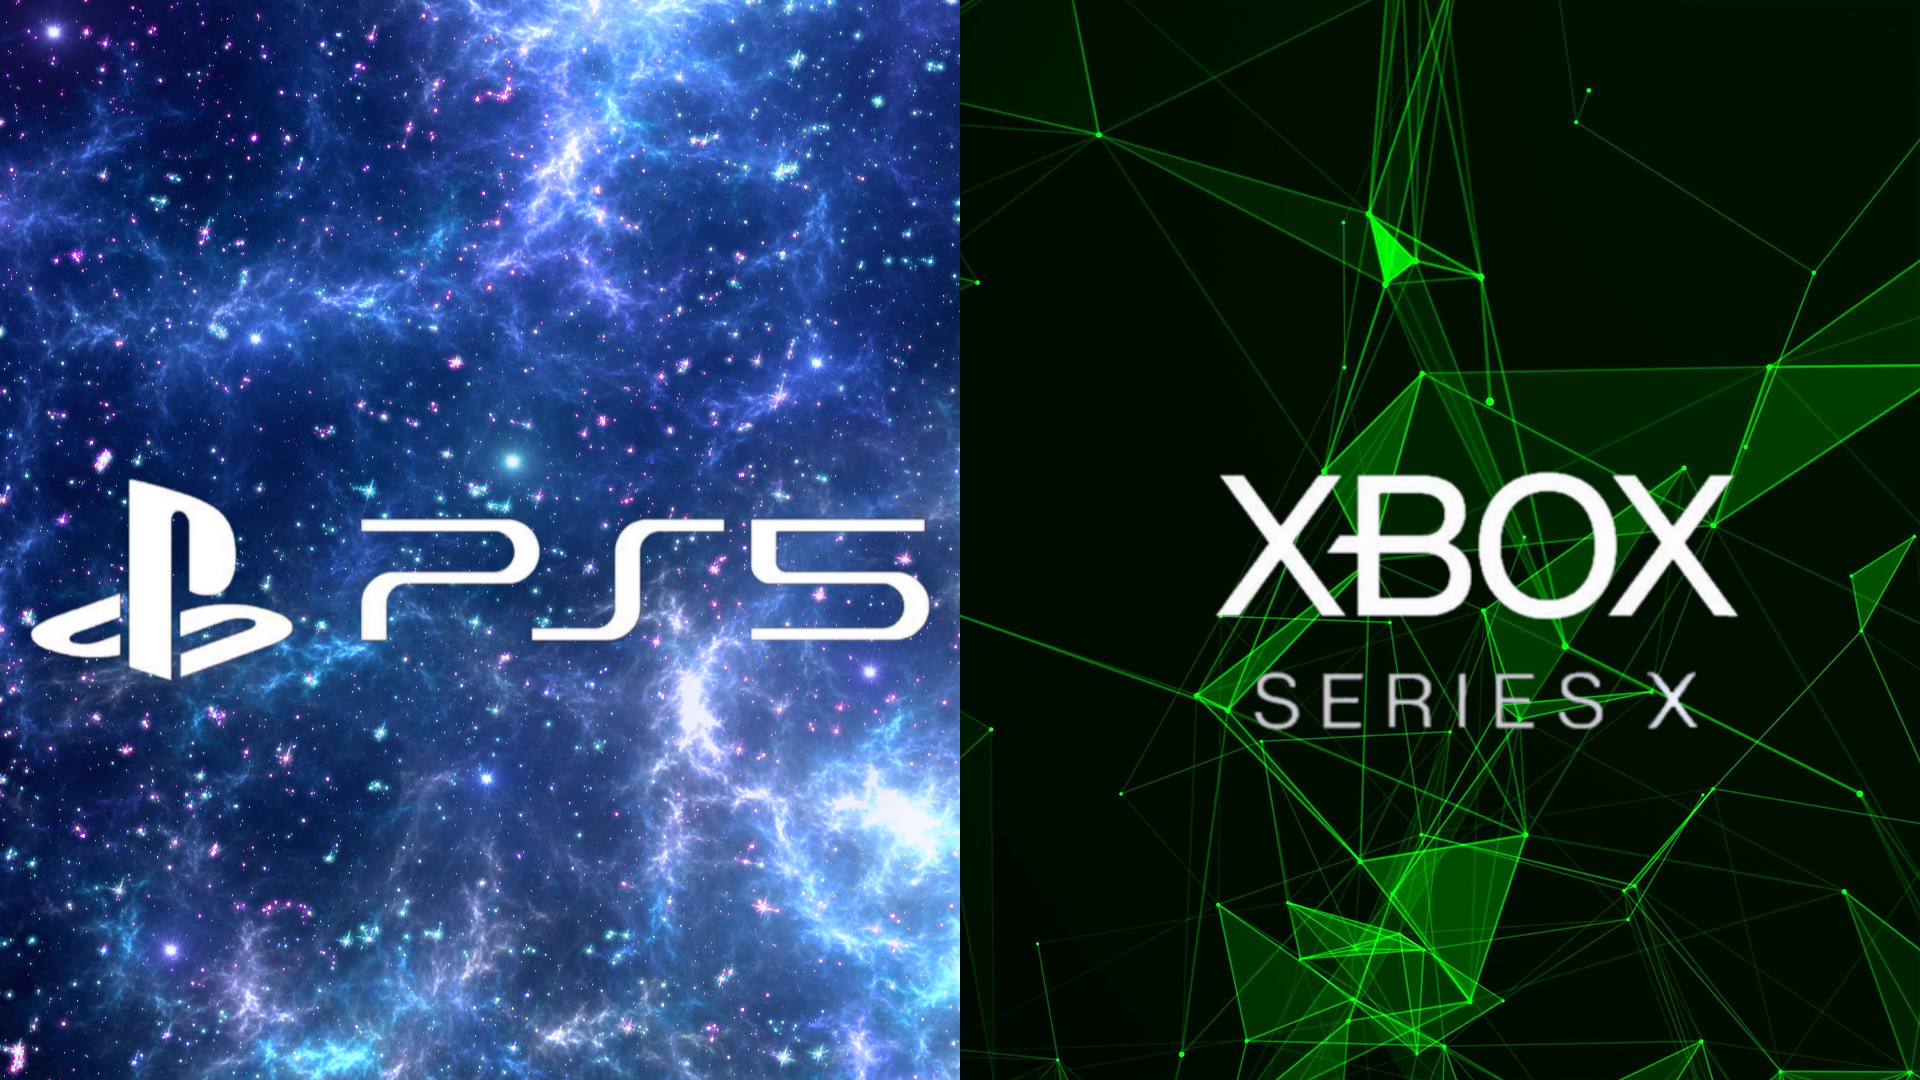 Ps5 And Xbox Series X Graphic Features Teased By The Last Of Us Animator